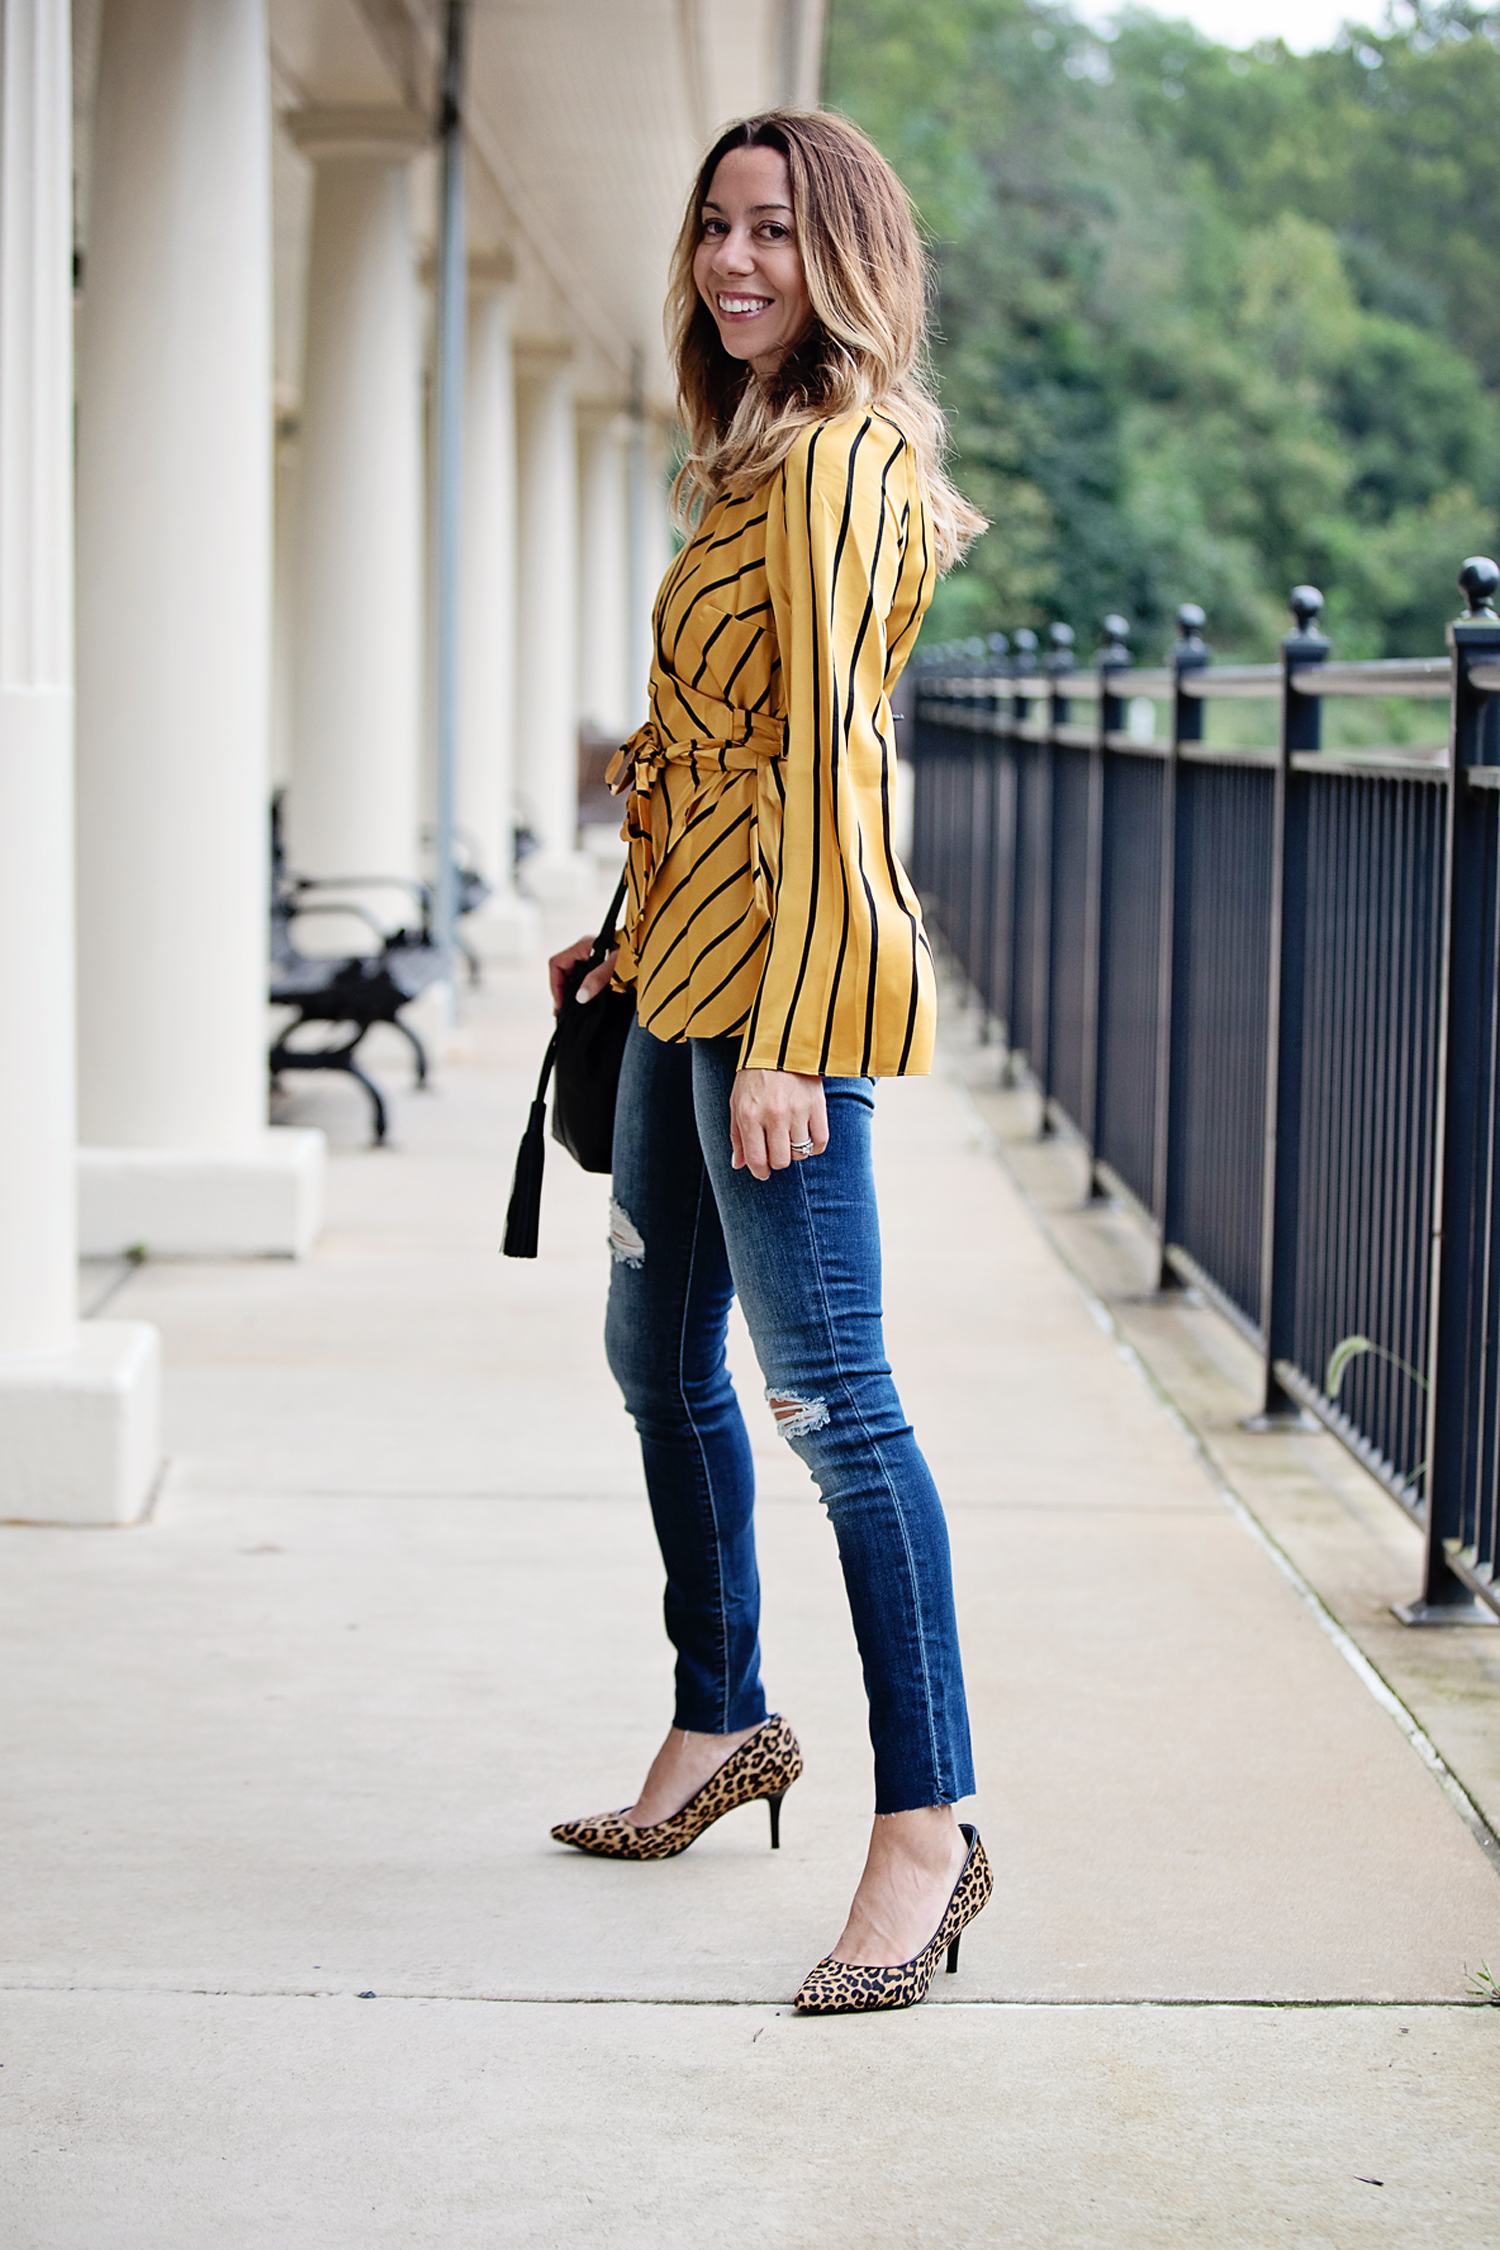 The motherchic wearing fall date night outfit from Macy's